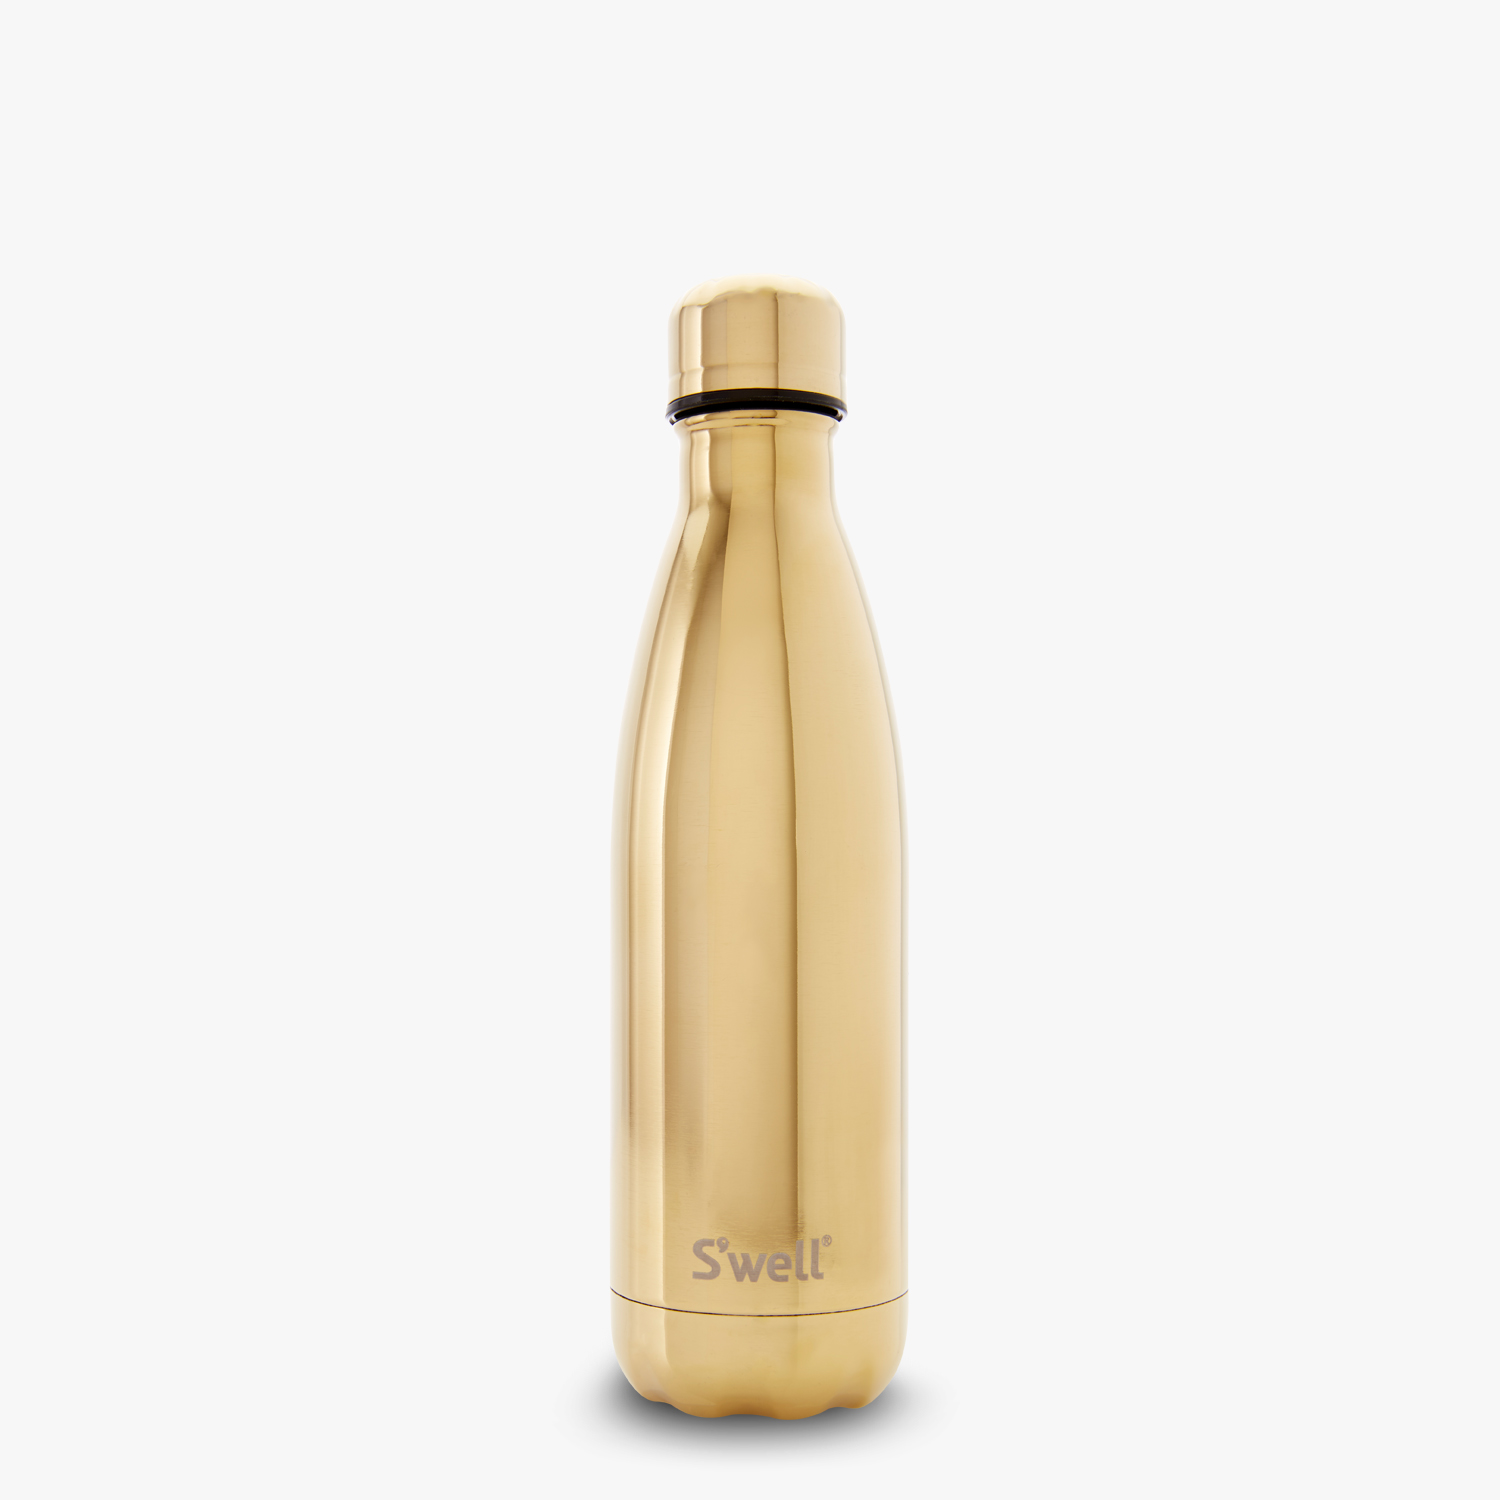 """S'well Bottles  are the new """"it"""" thing this year, and trust us... you want one! This beauty keeps liquids cold for 24 hours and hot for 12! It is double-walled stainless steel and is BPA free. This cute bottle comes in three sizes and tons of fun colors! This would be a great gift for anyone on the go! Our pick is  this gold  or  bright orange  one!"""